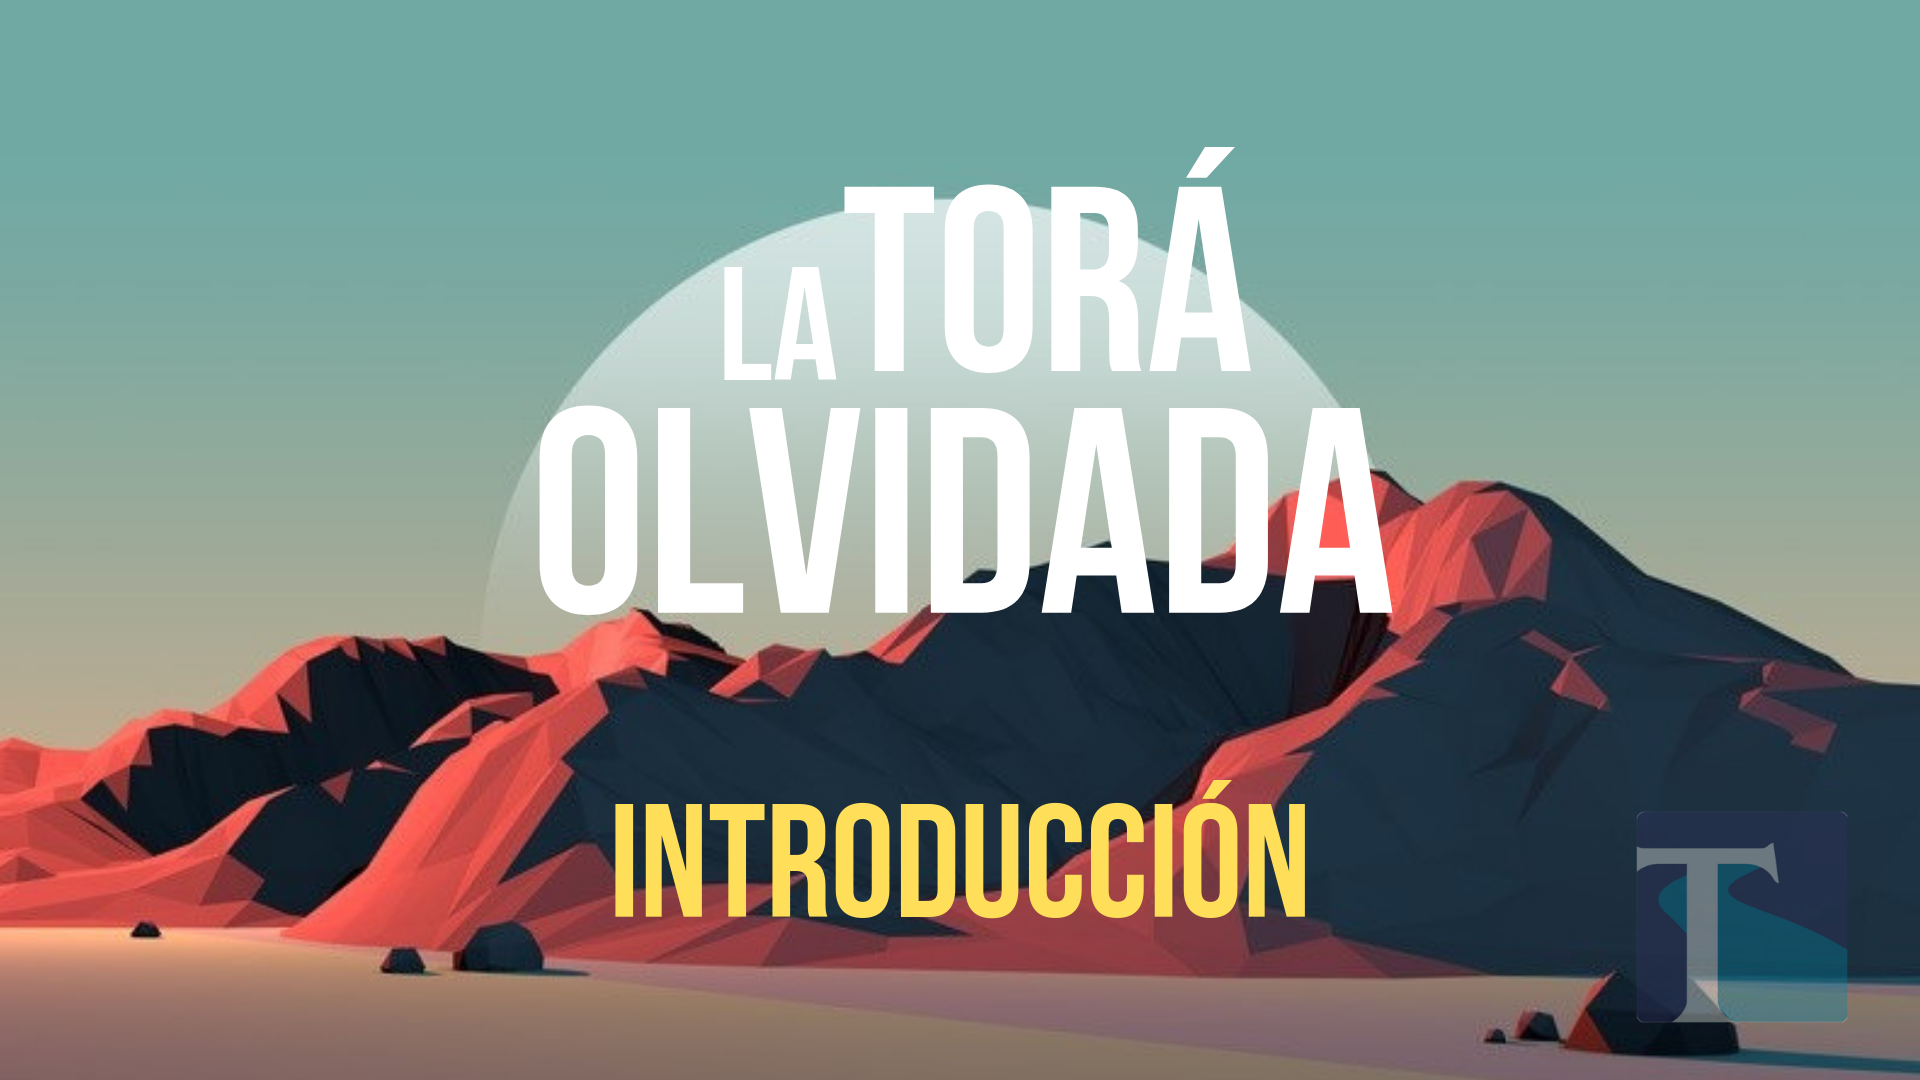 Copy of La Tora Olvidada.png